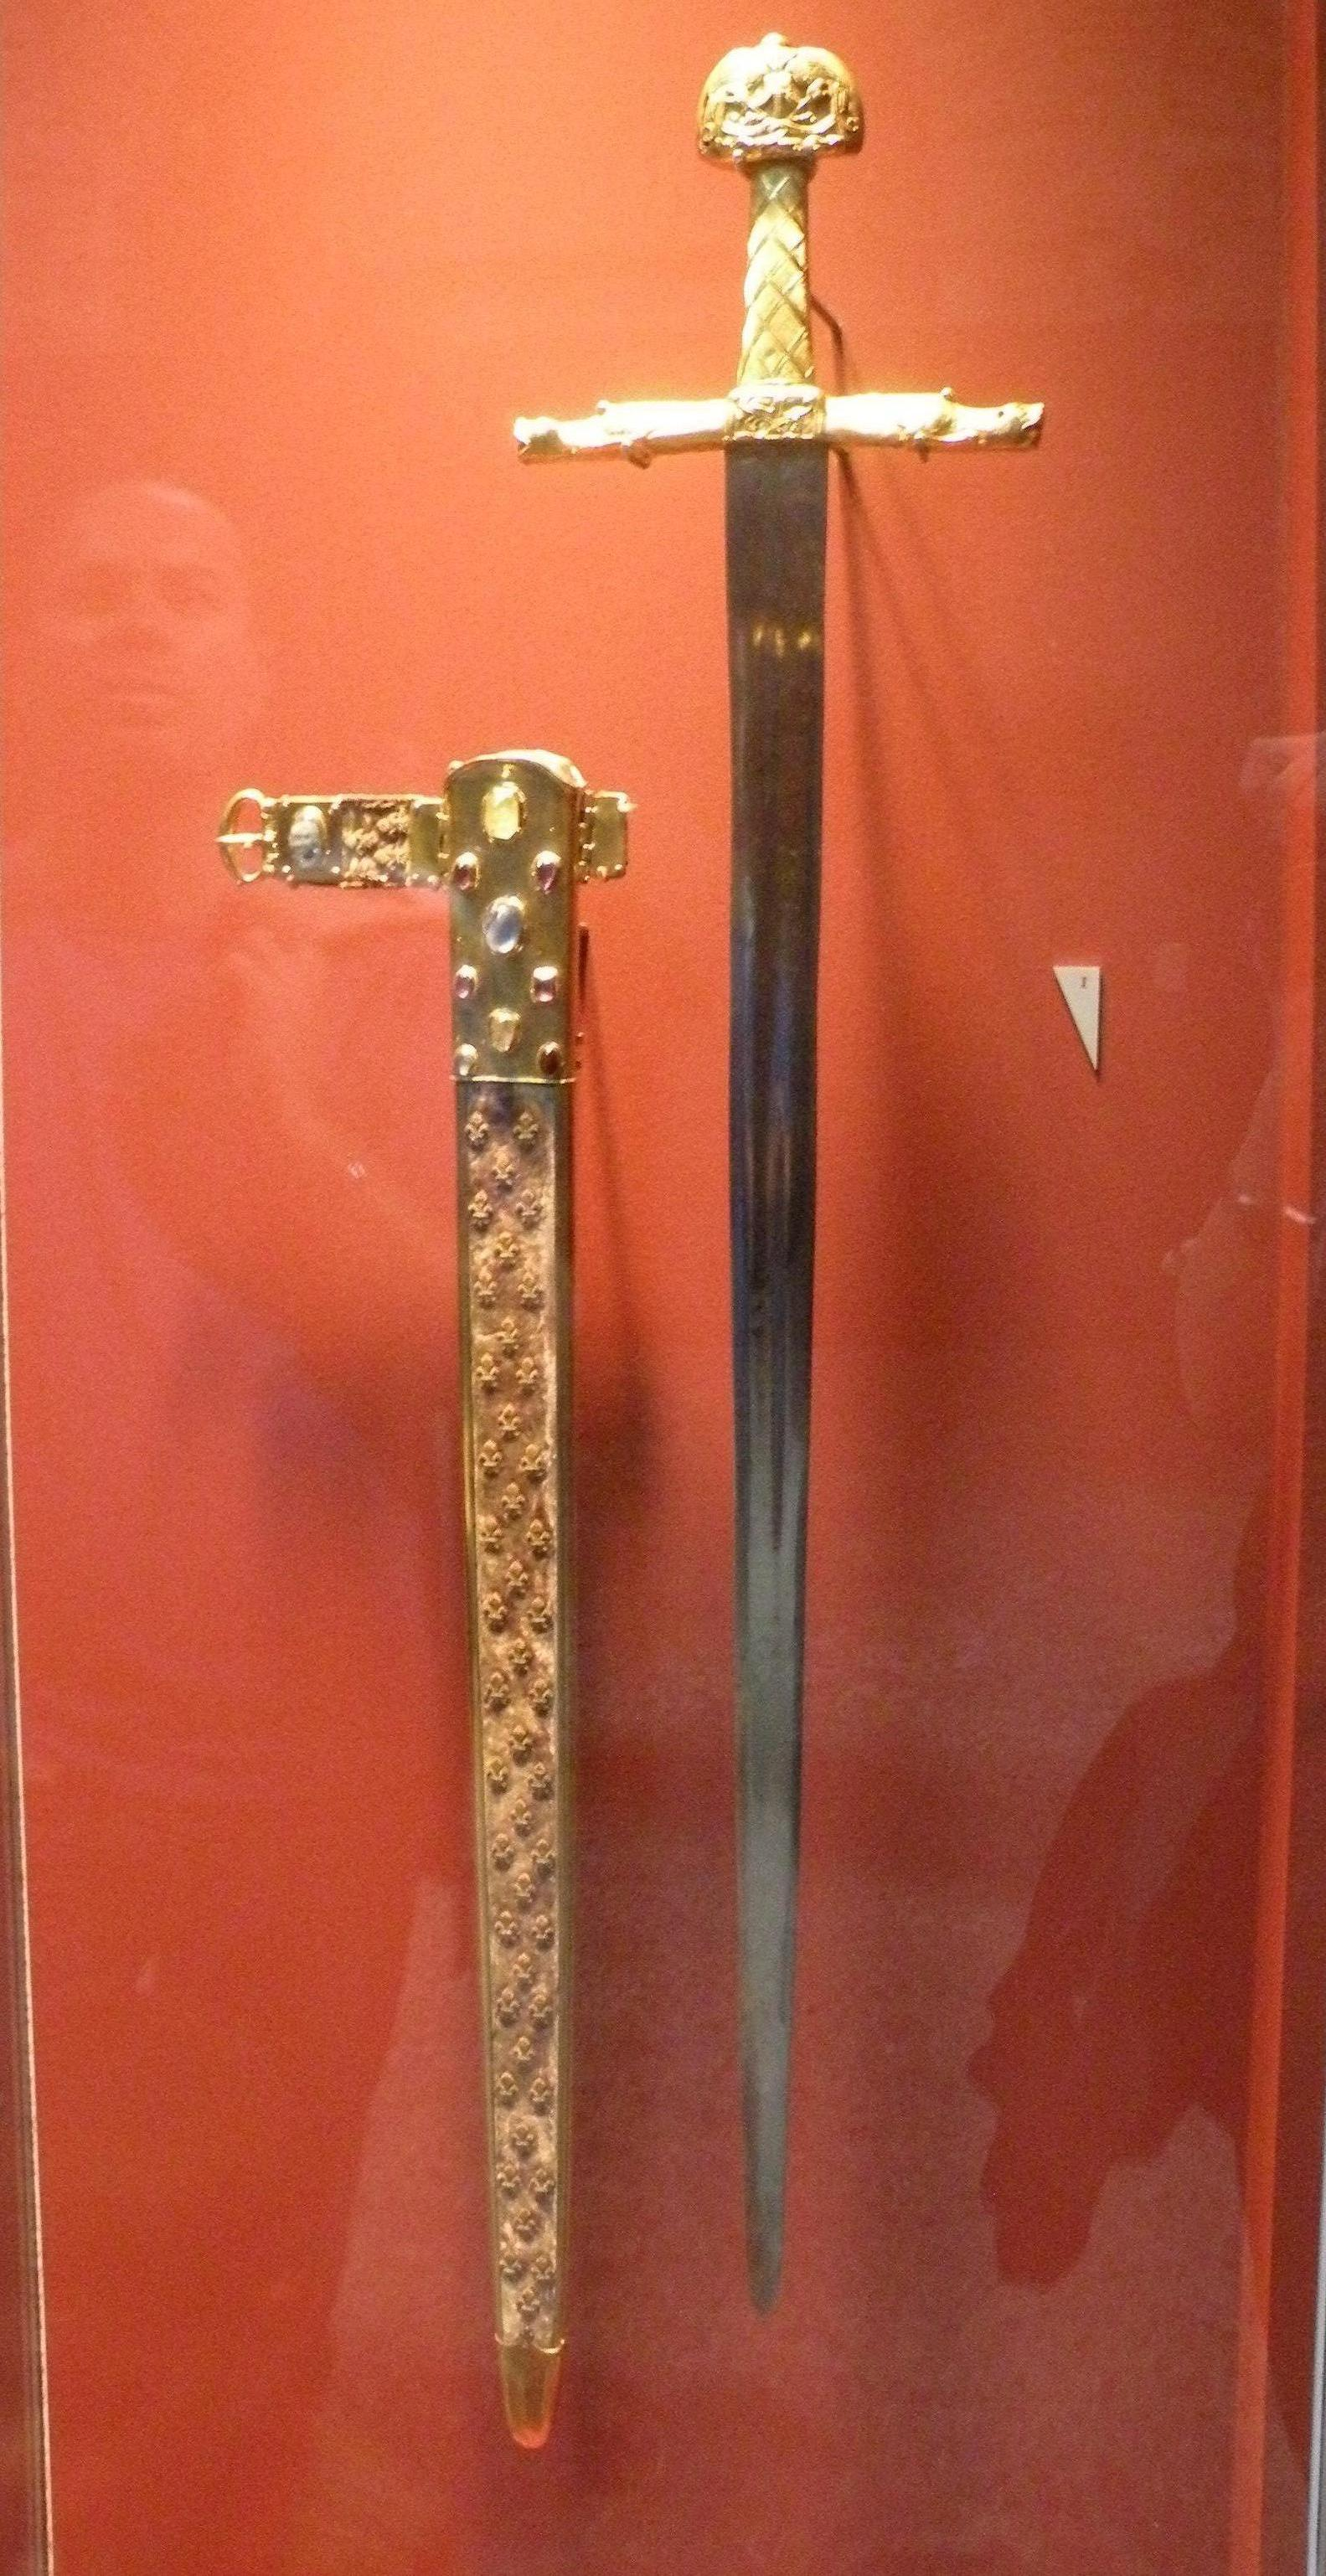 The coronation sword of the French kings, Joyeuse. Modified repeatedly ...